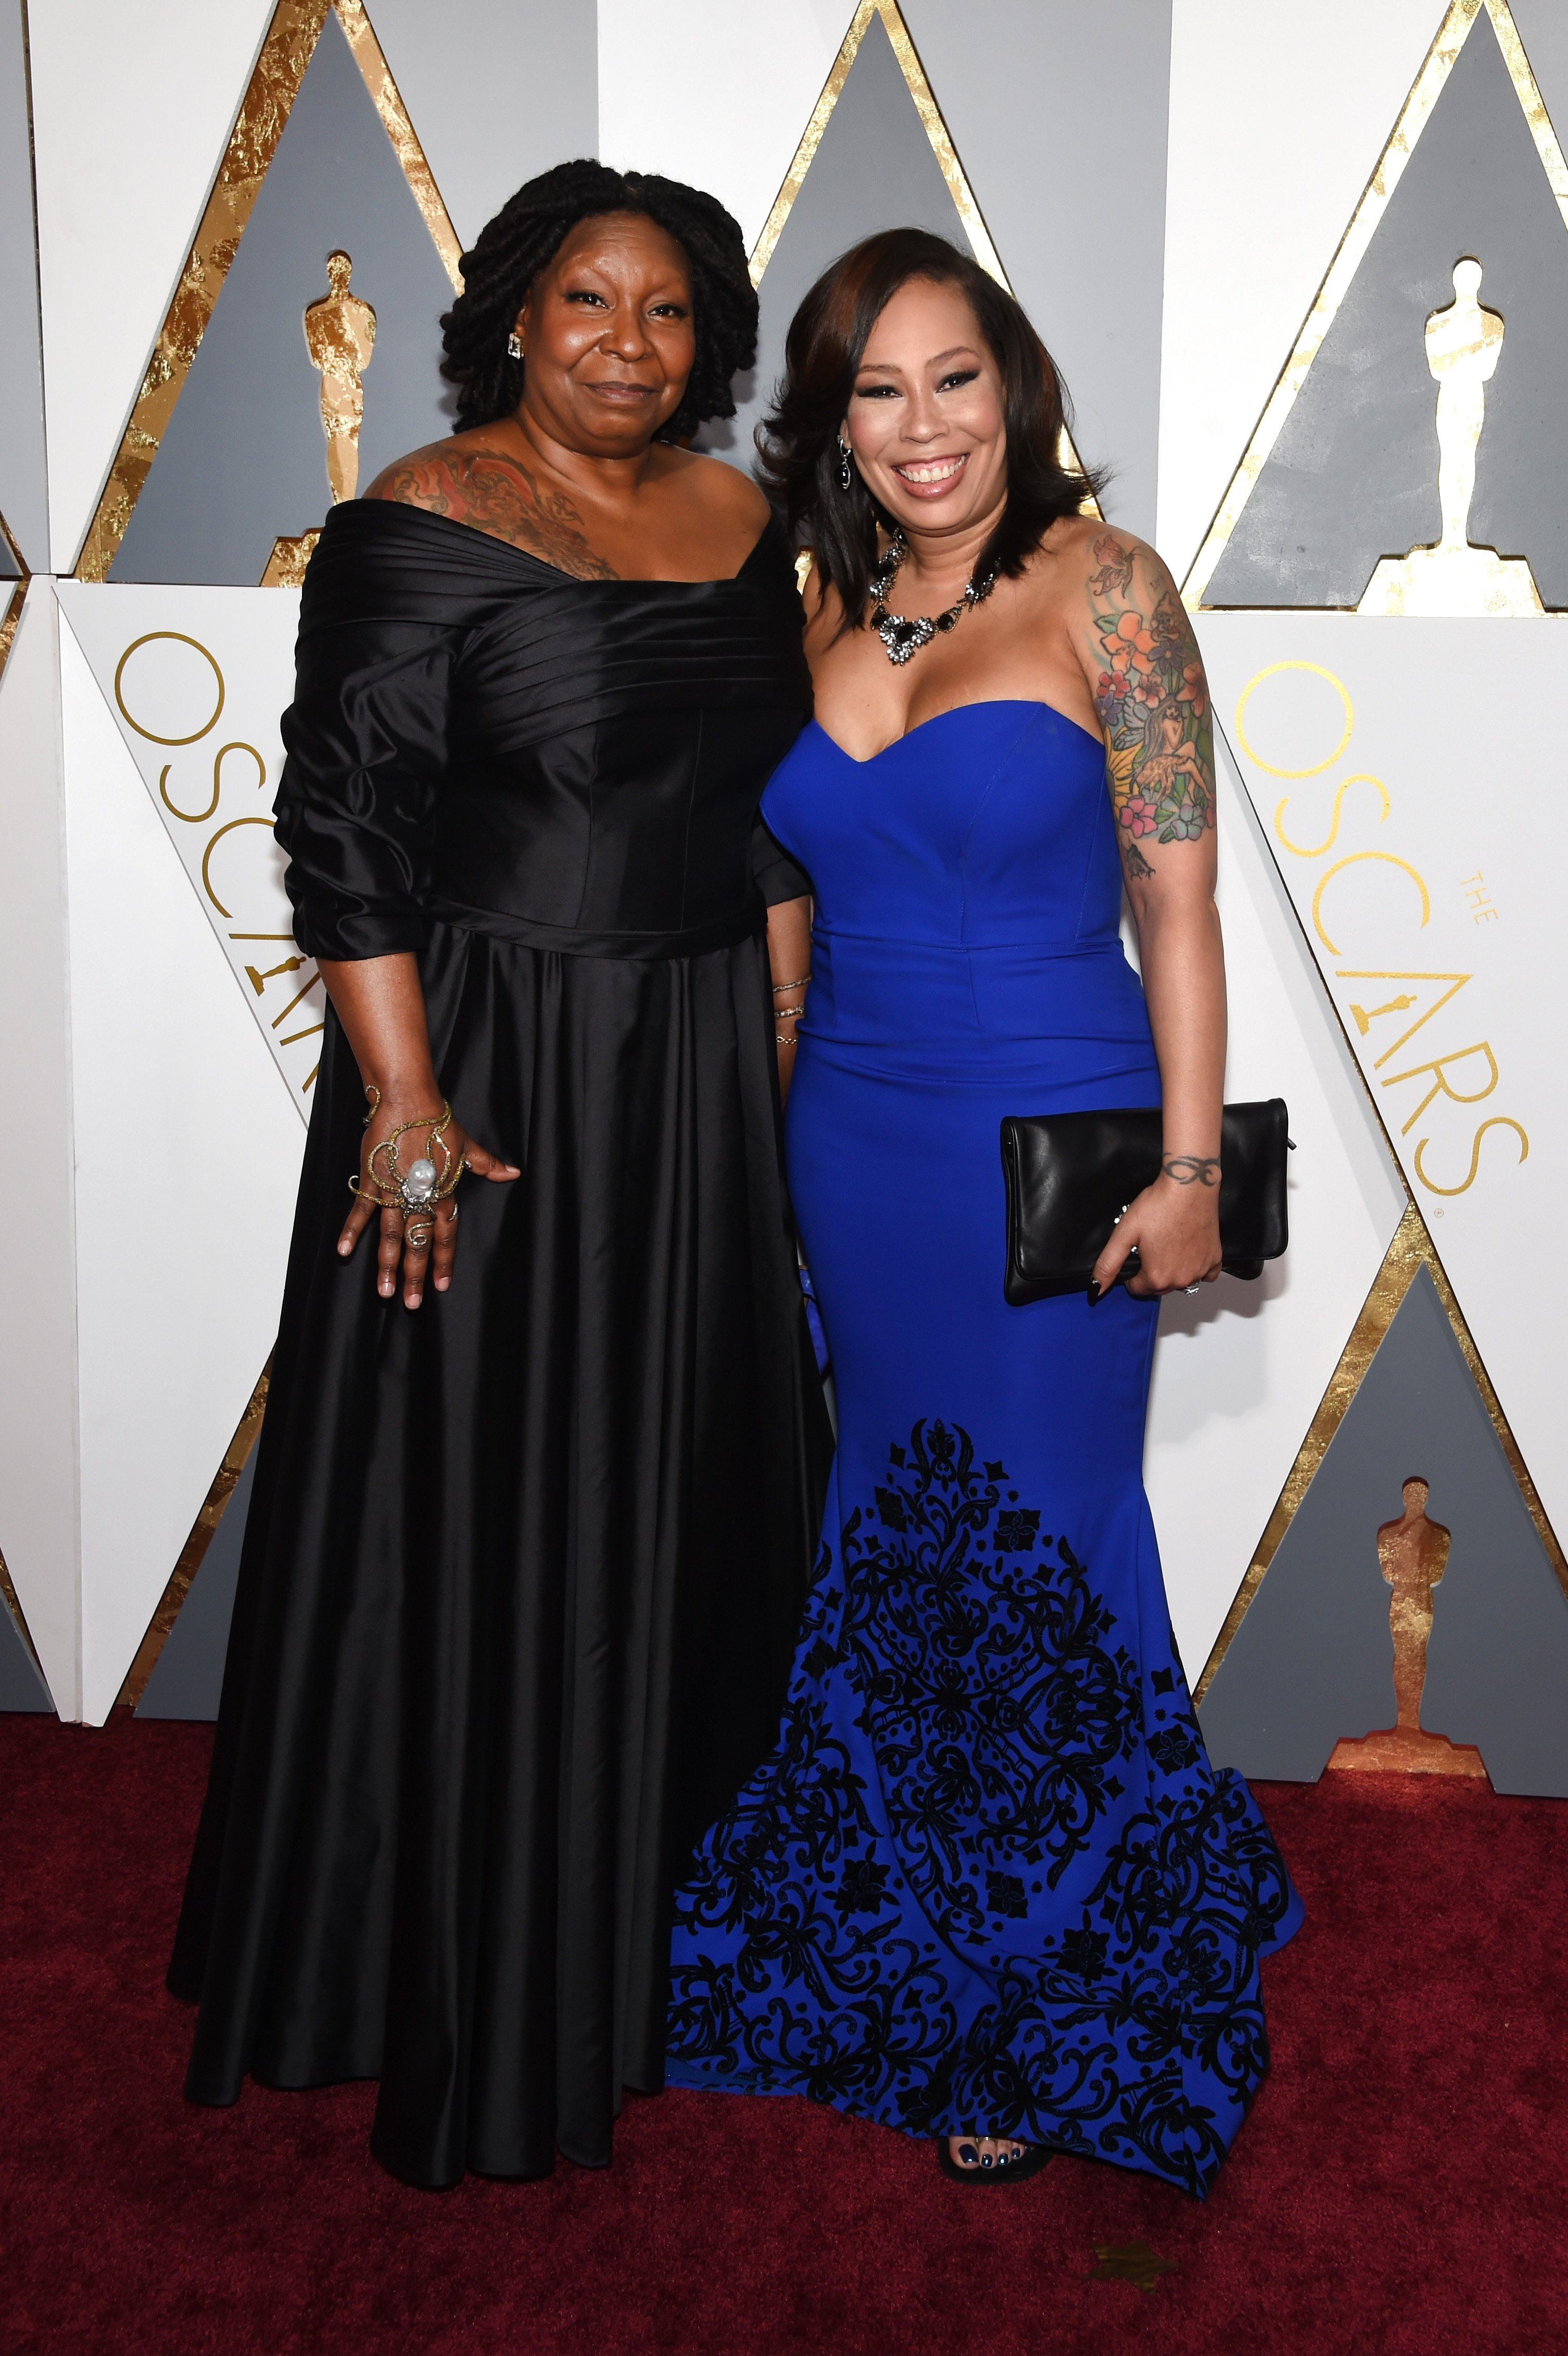 Whoopi Goldberg & Alex Martin at the 88th Annual Academy Awards in Hollywood on Feb. 28, 2016. |Photo: Getty Images